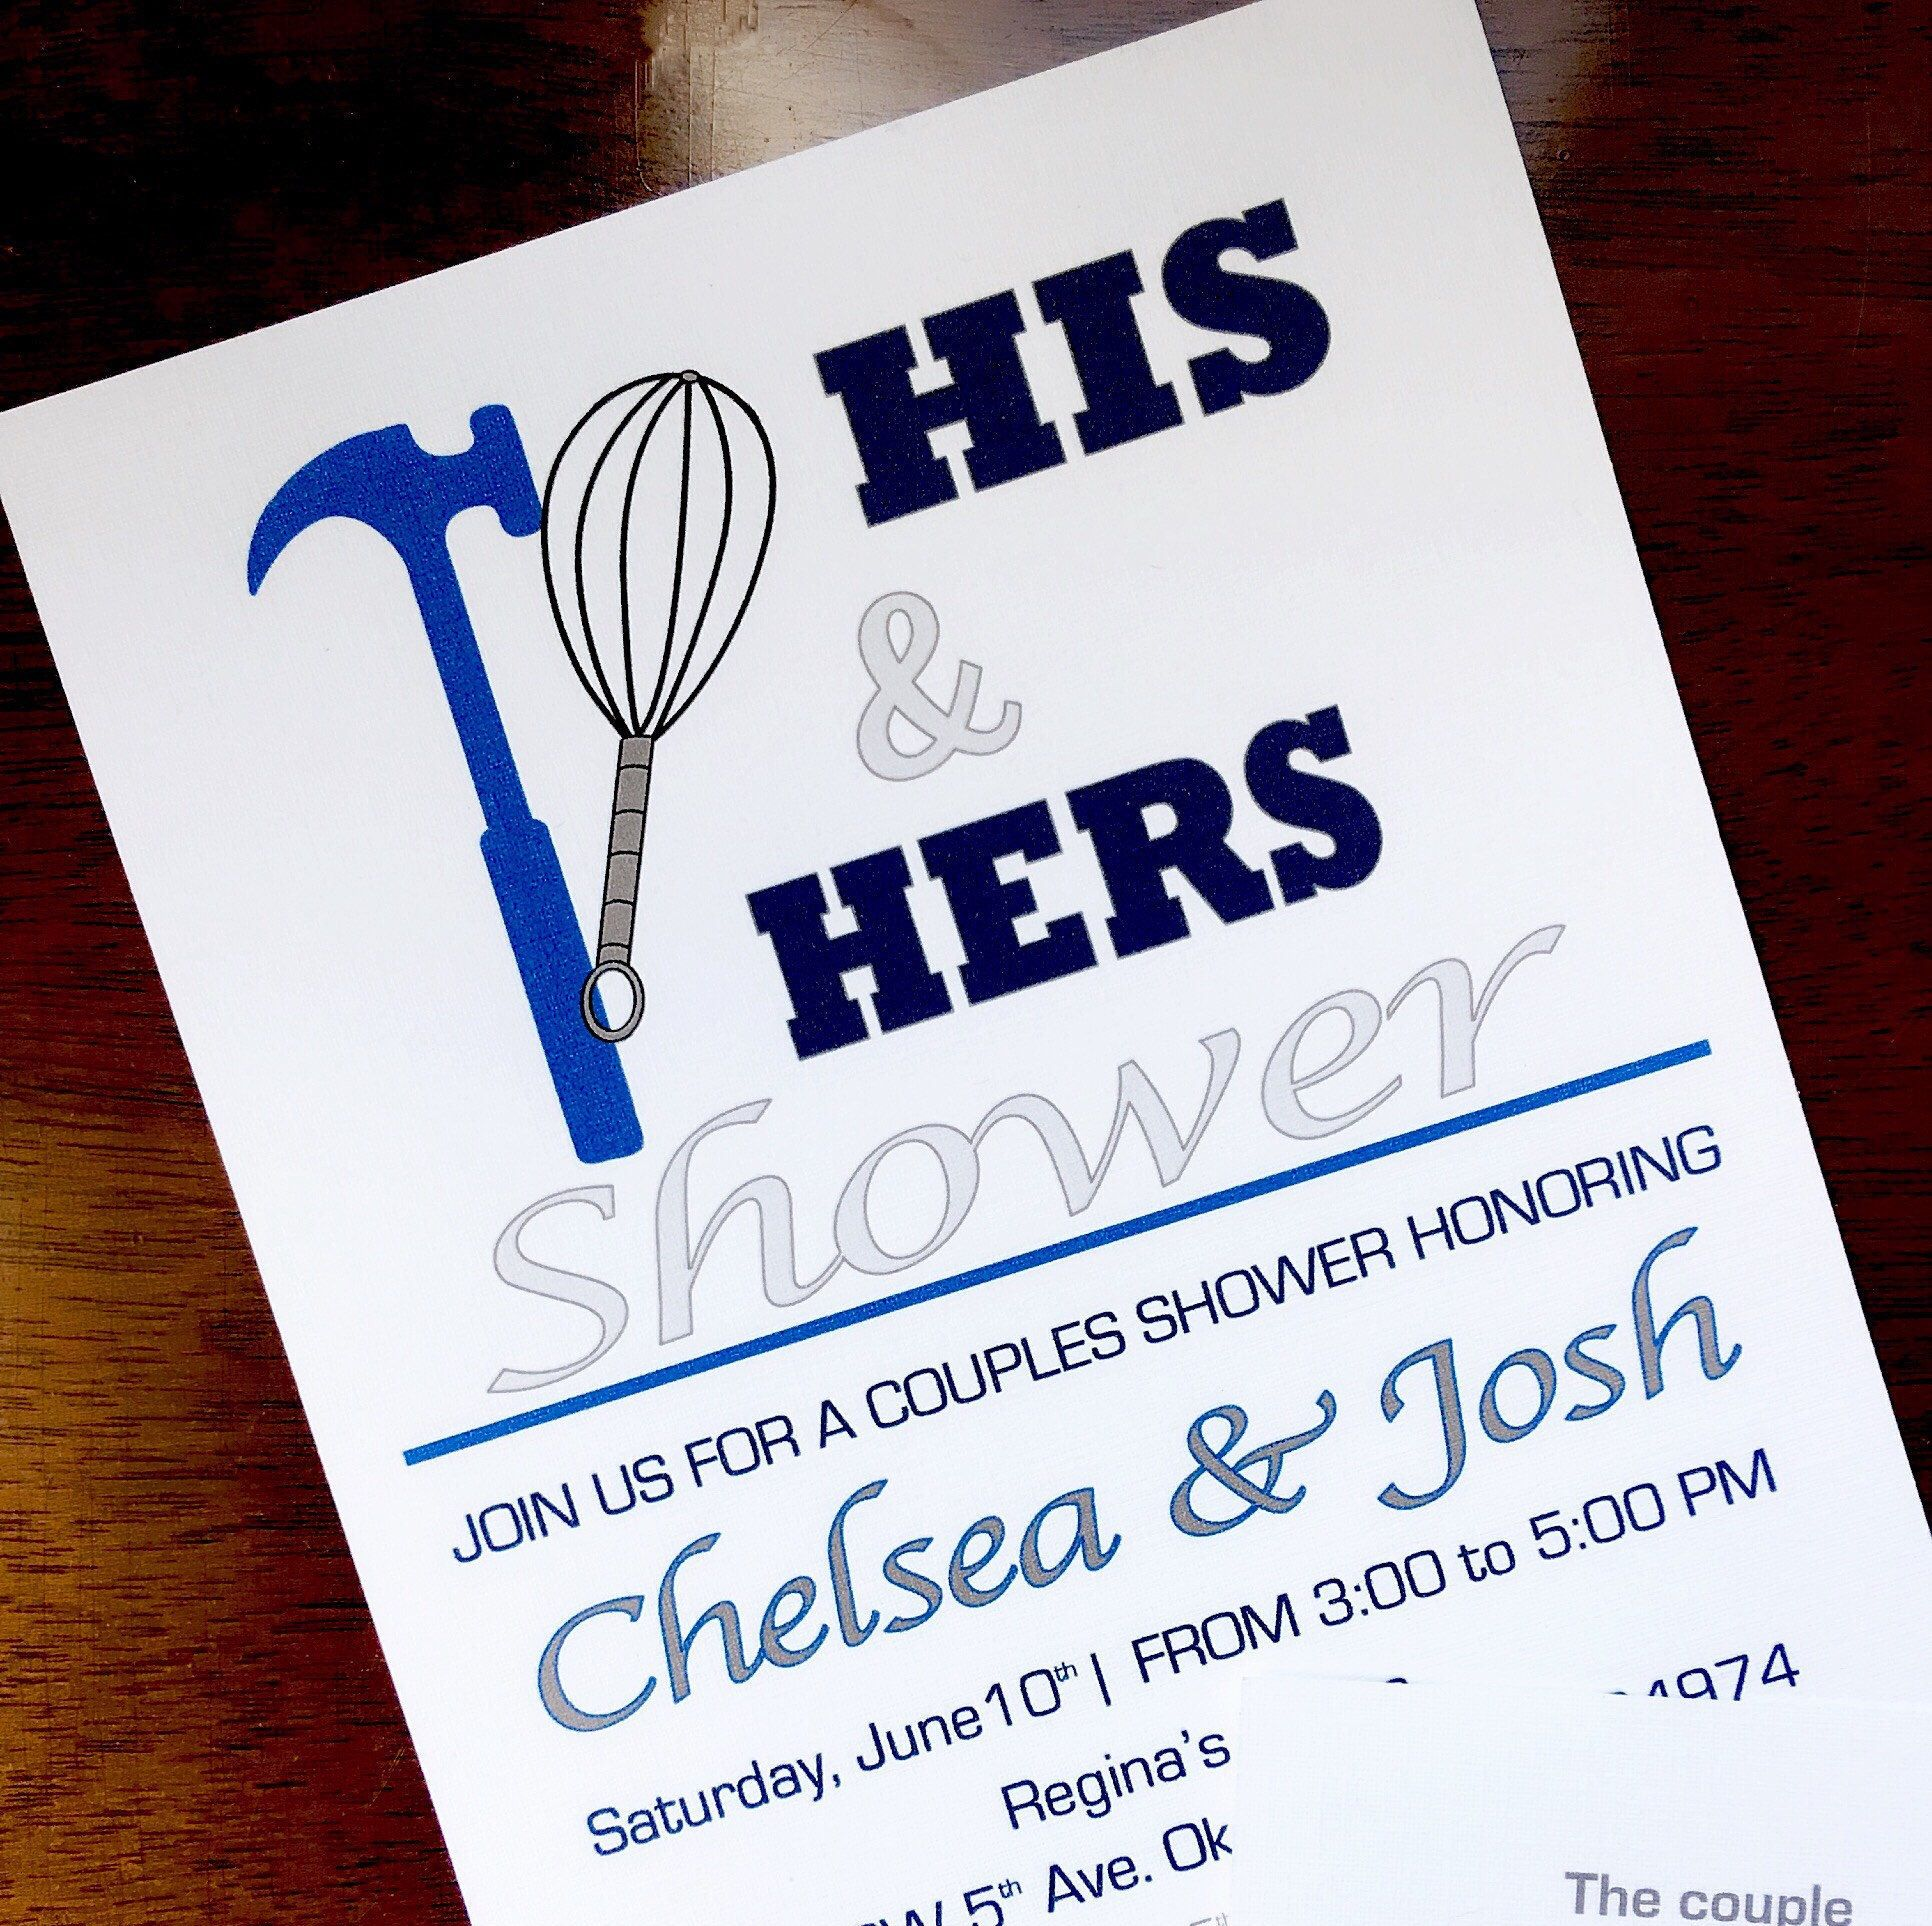 His and hers couples bridal shower by beforetherings on